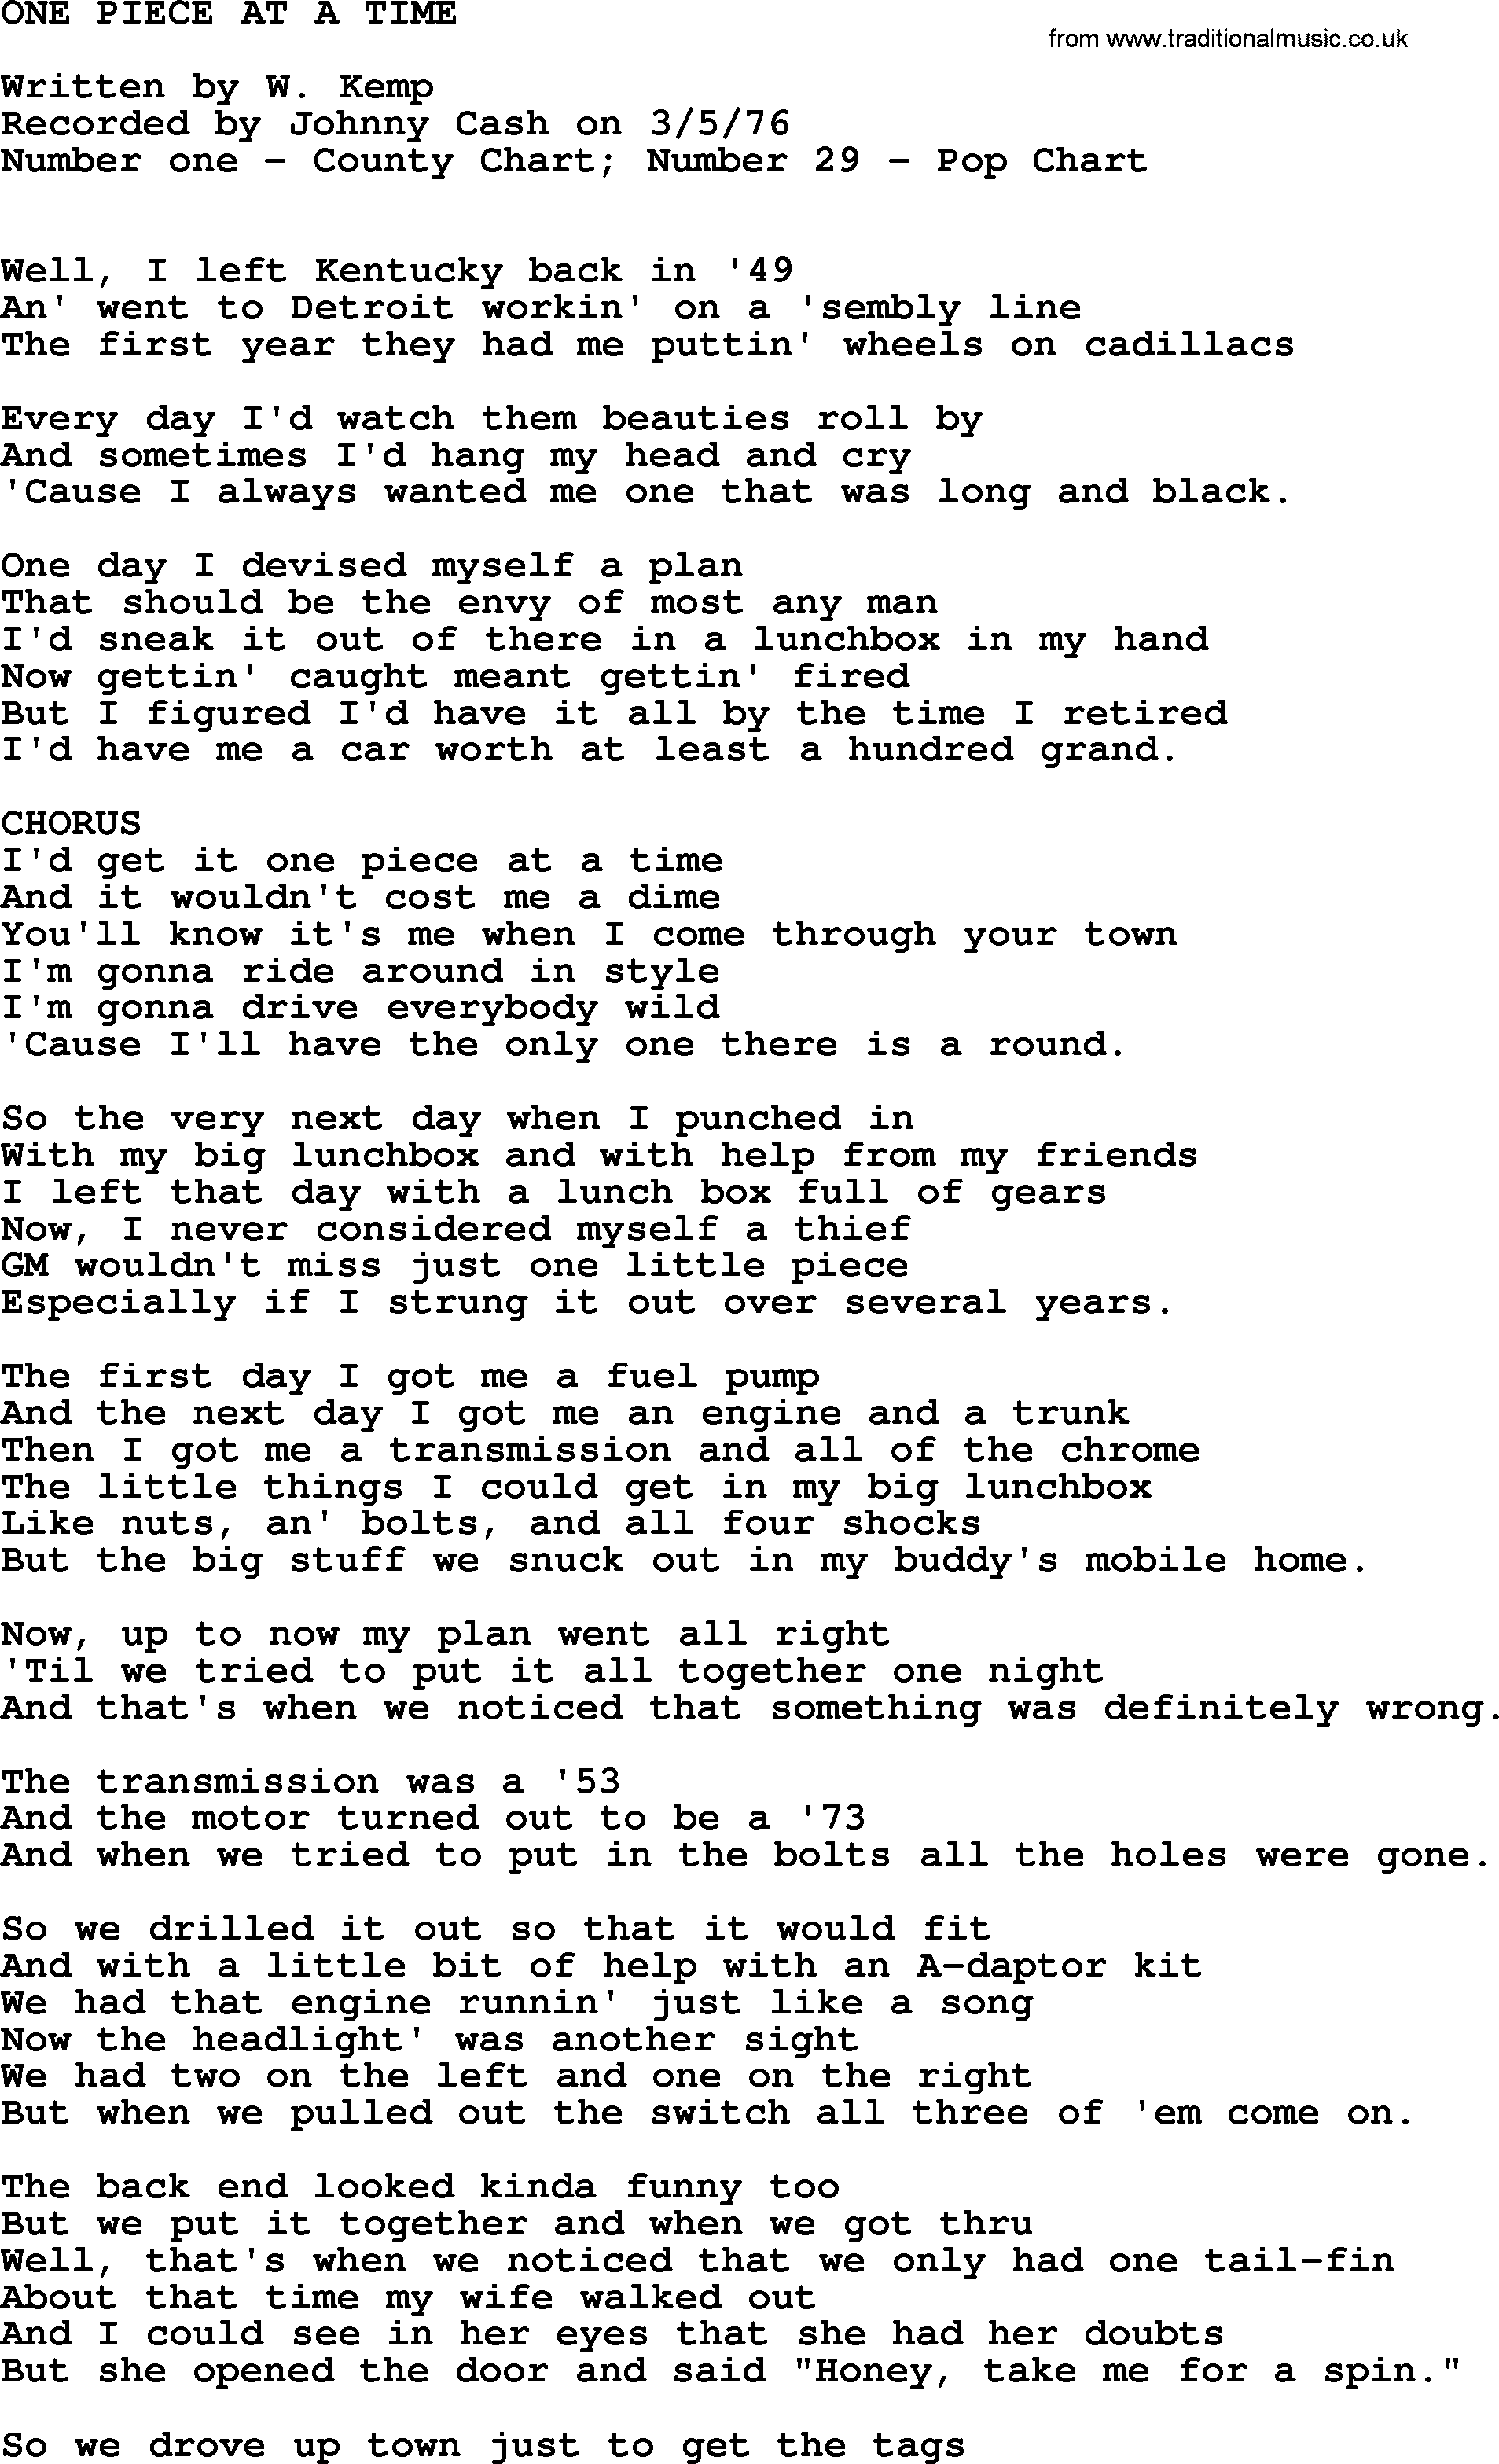 Johnny Cash Song One Piece At A Time Lyrics